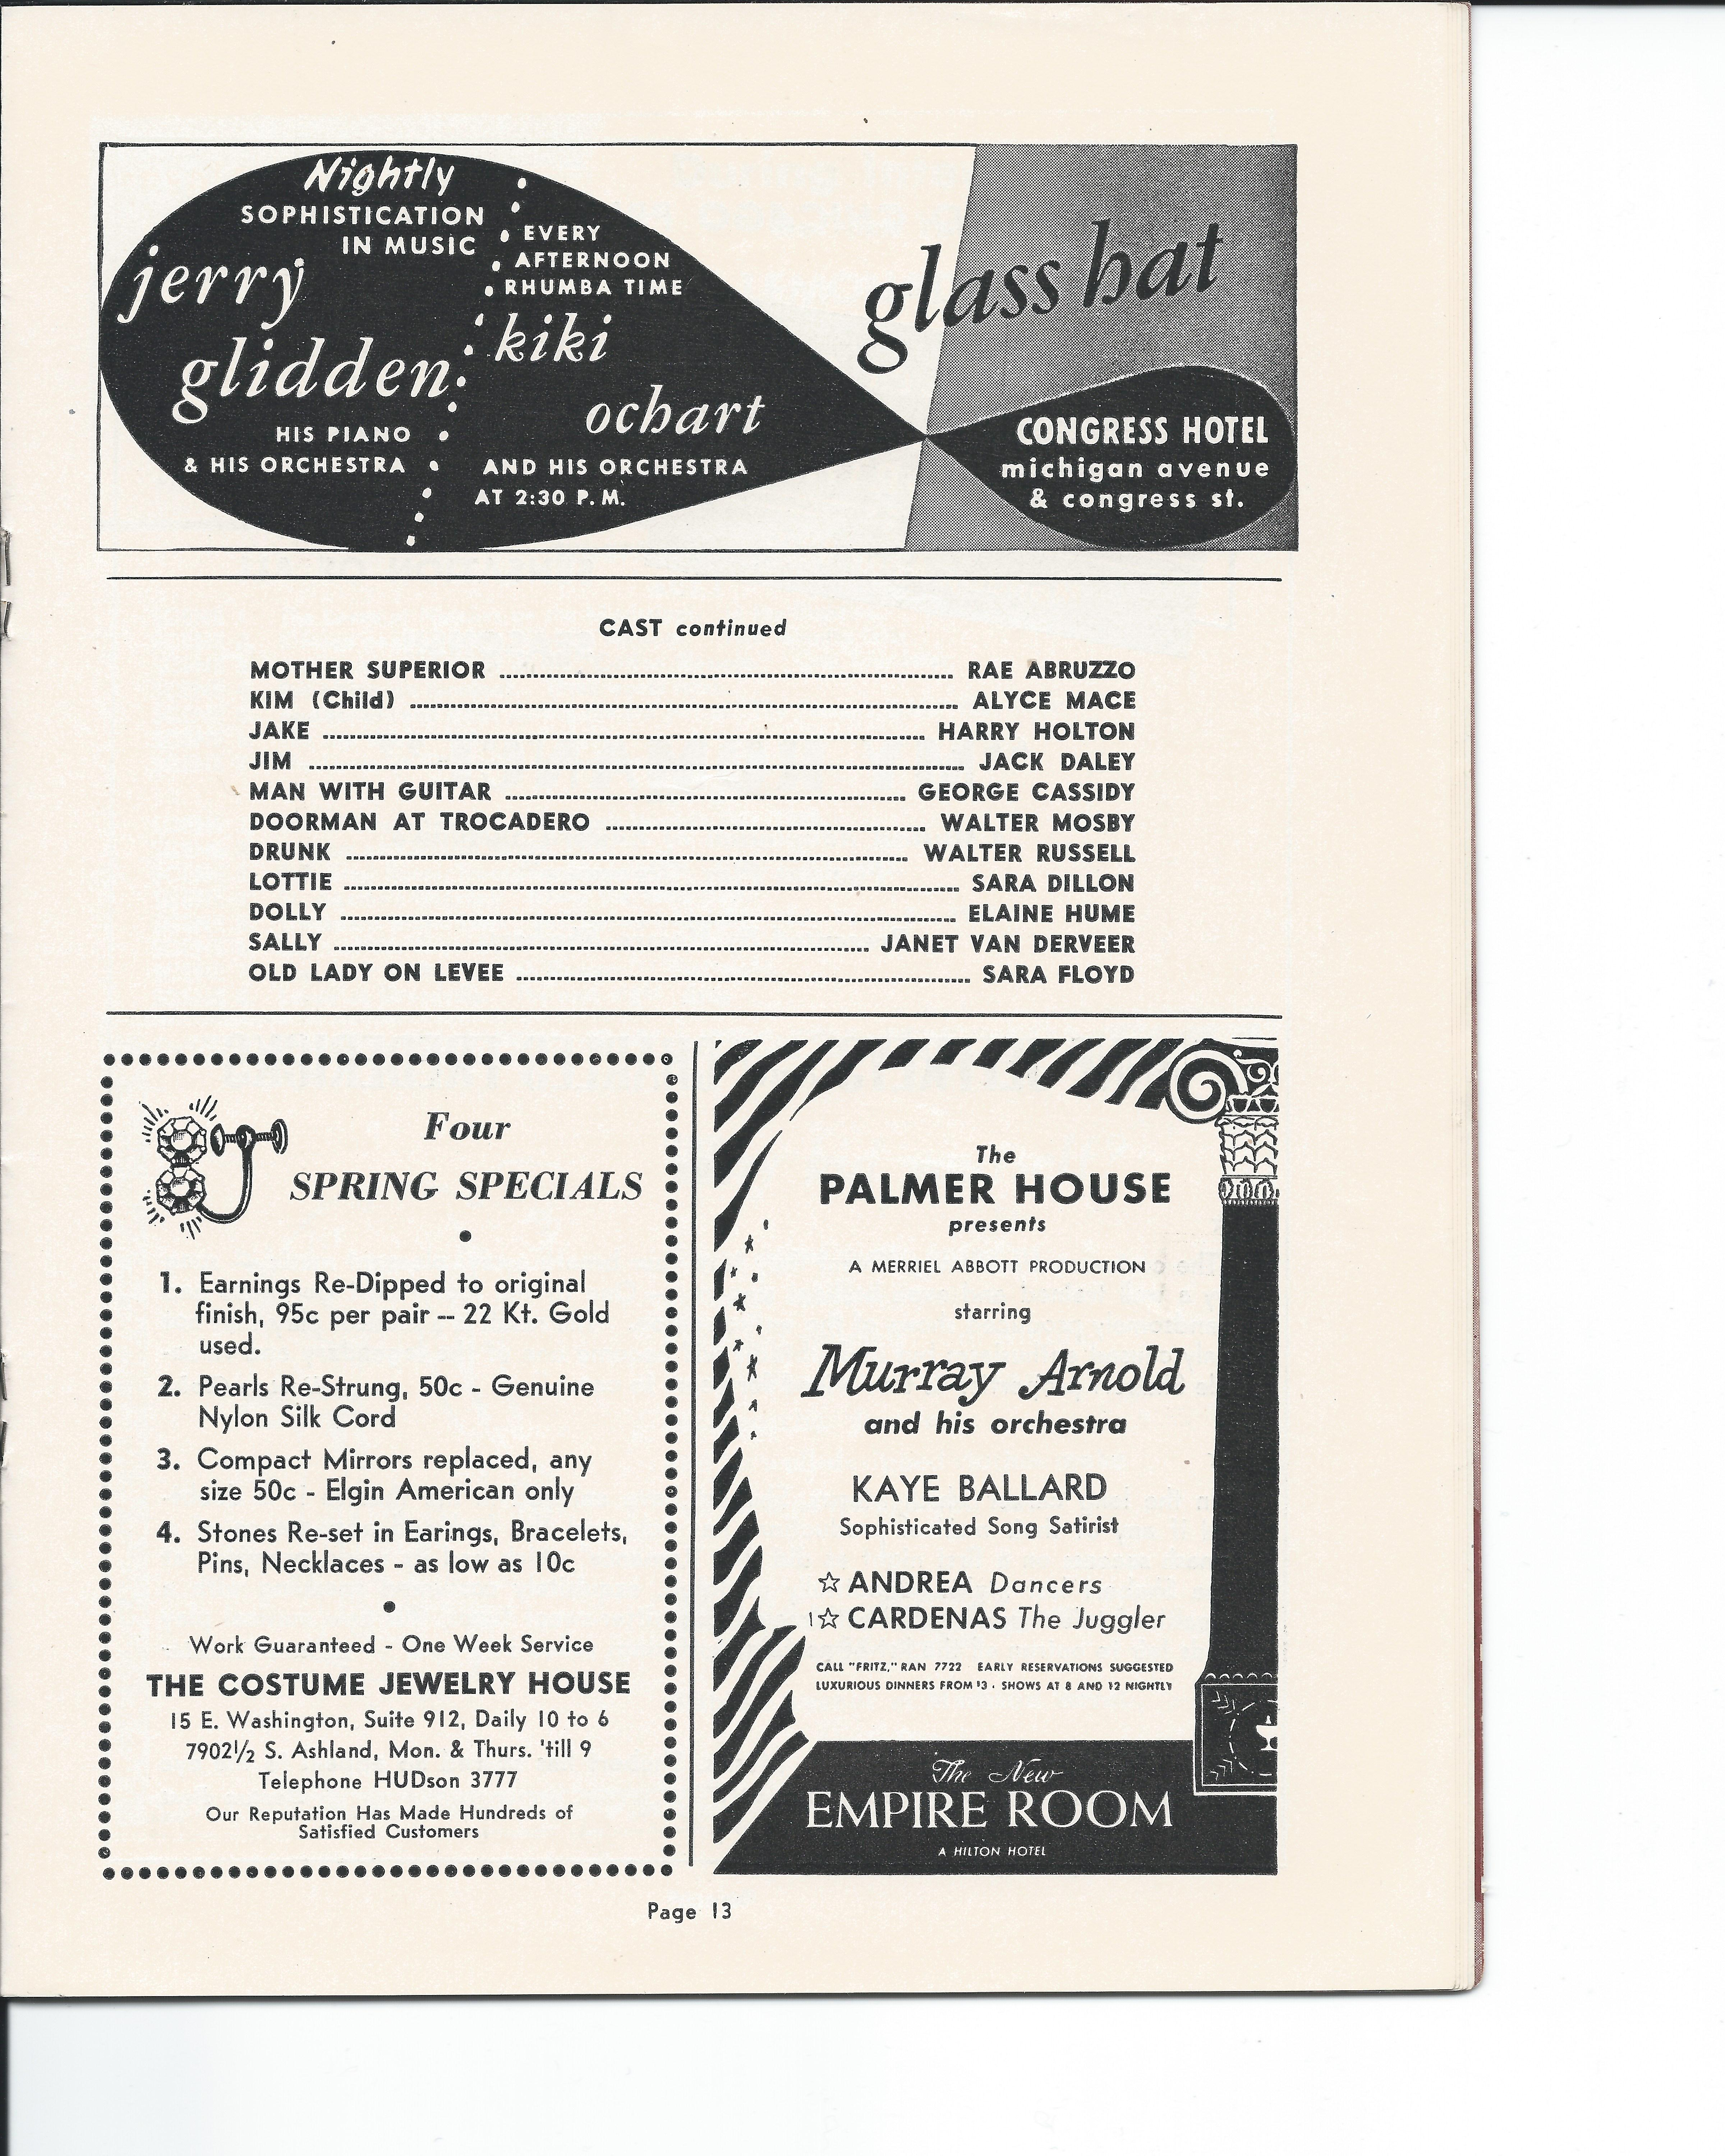 Showboat Stagebill - Chicago Shubert Theater, 3/21/1948 p. 13